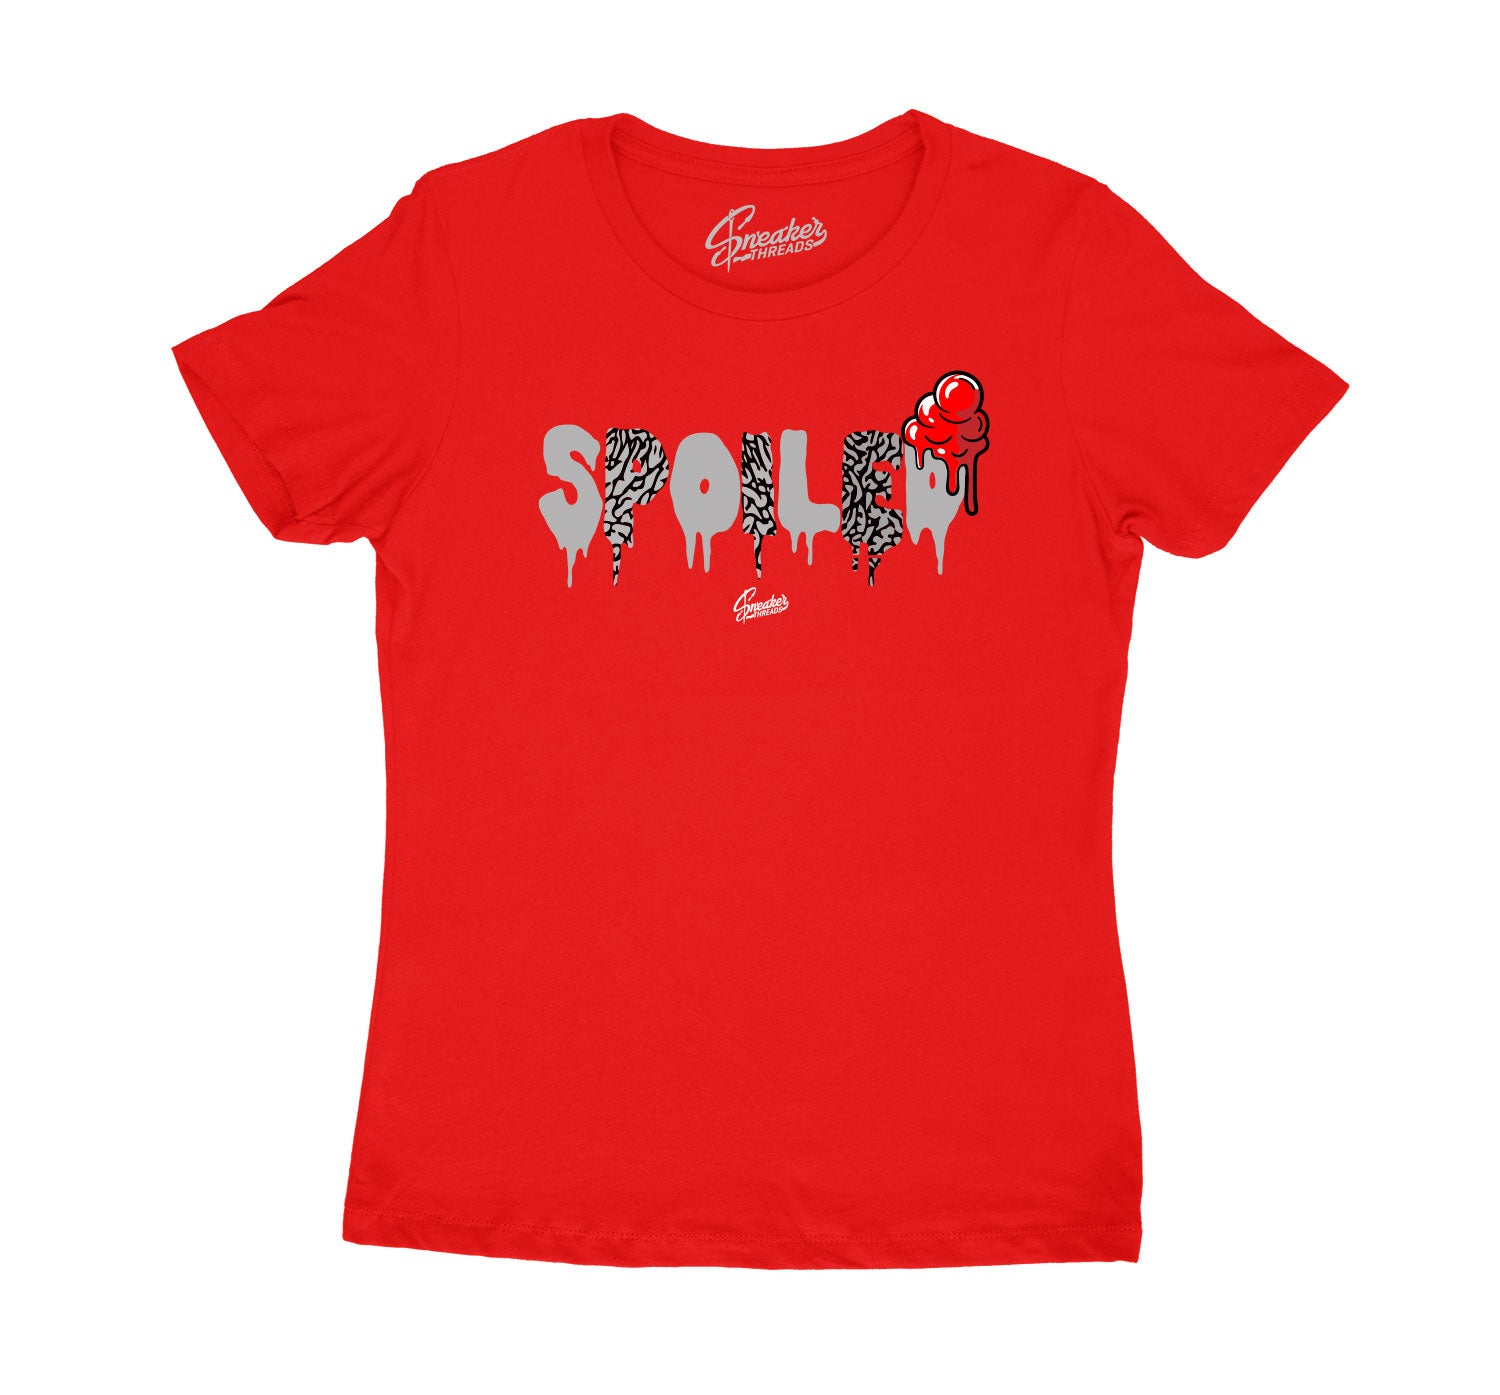 Womens - Red Cement 3 Spoiled Shirt